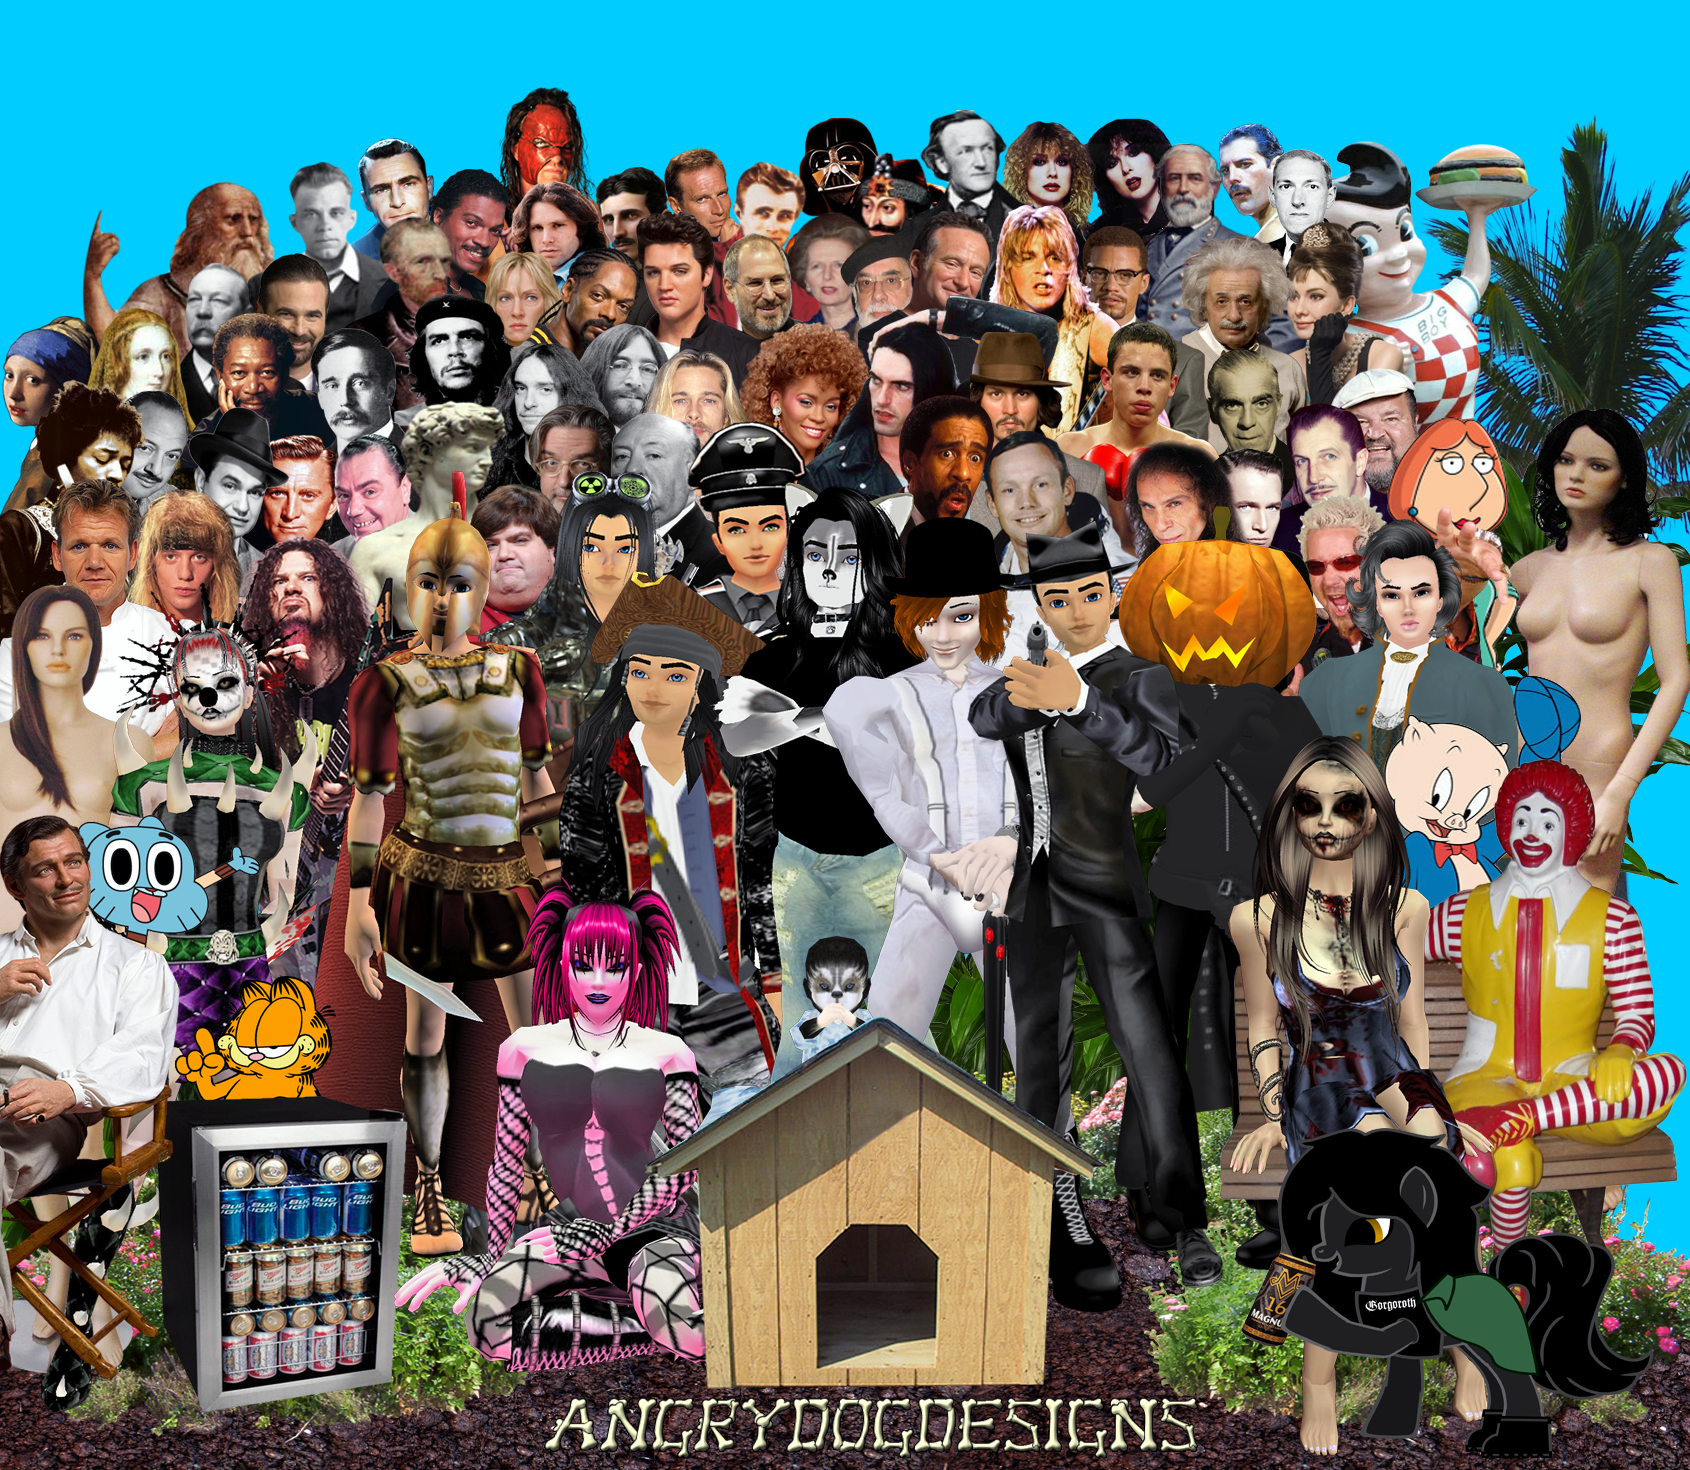 AngryDogDesigns Poster (Sgt. Pepper Spoof) by MrAngryDog